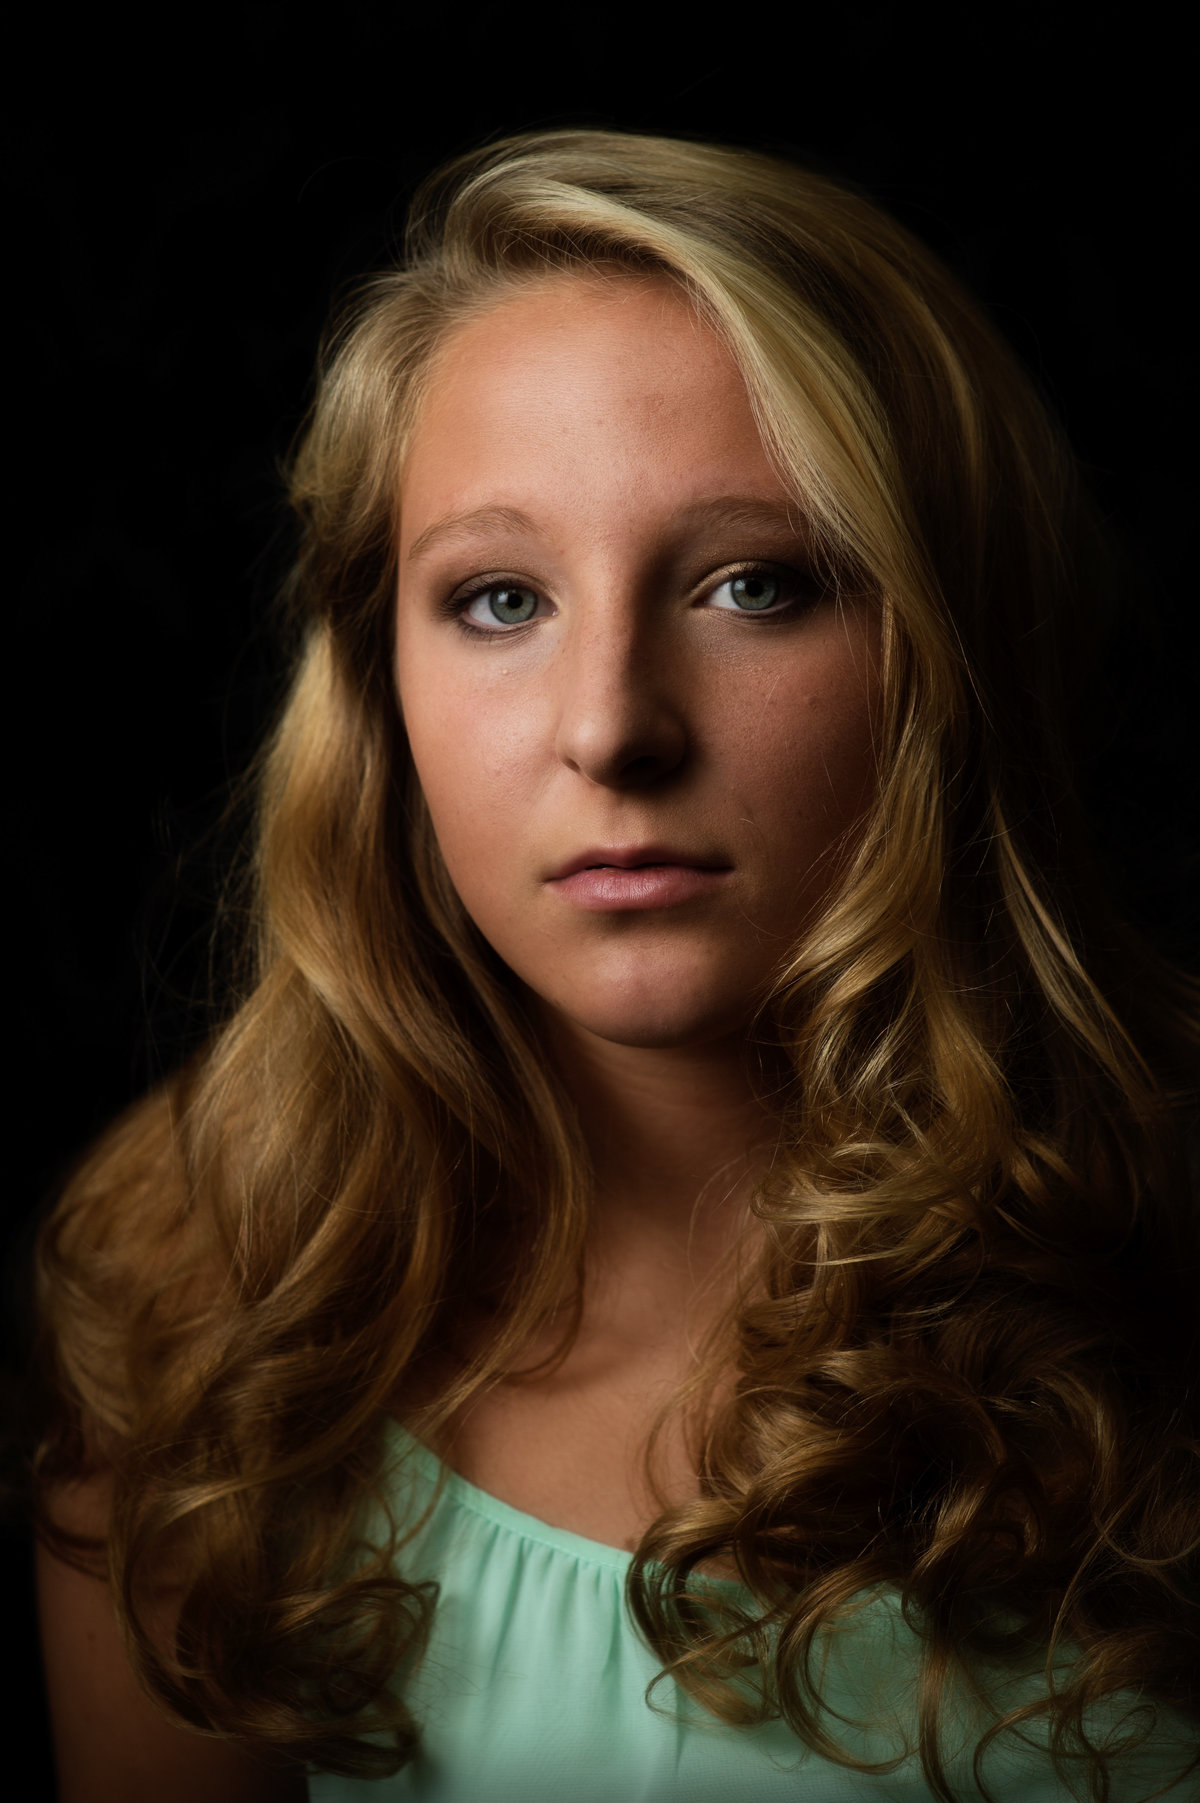 H.S. Senior Portrait Session